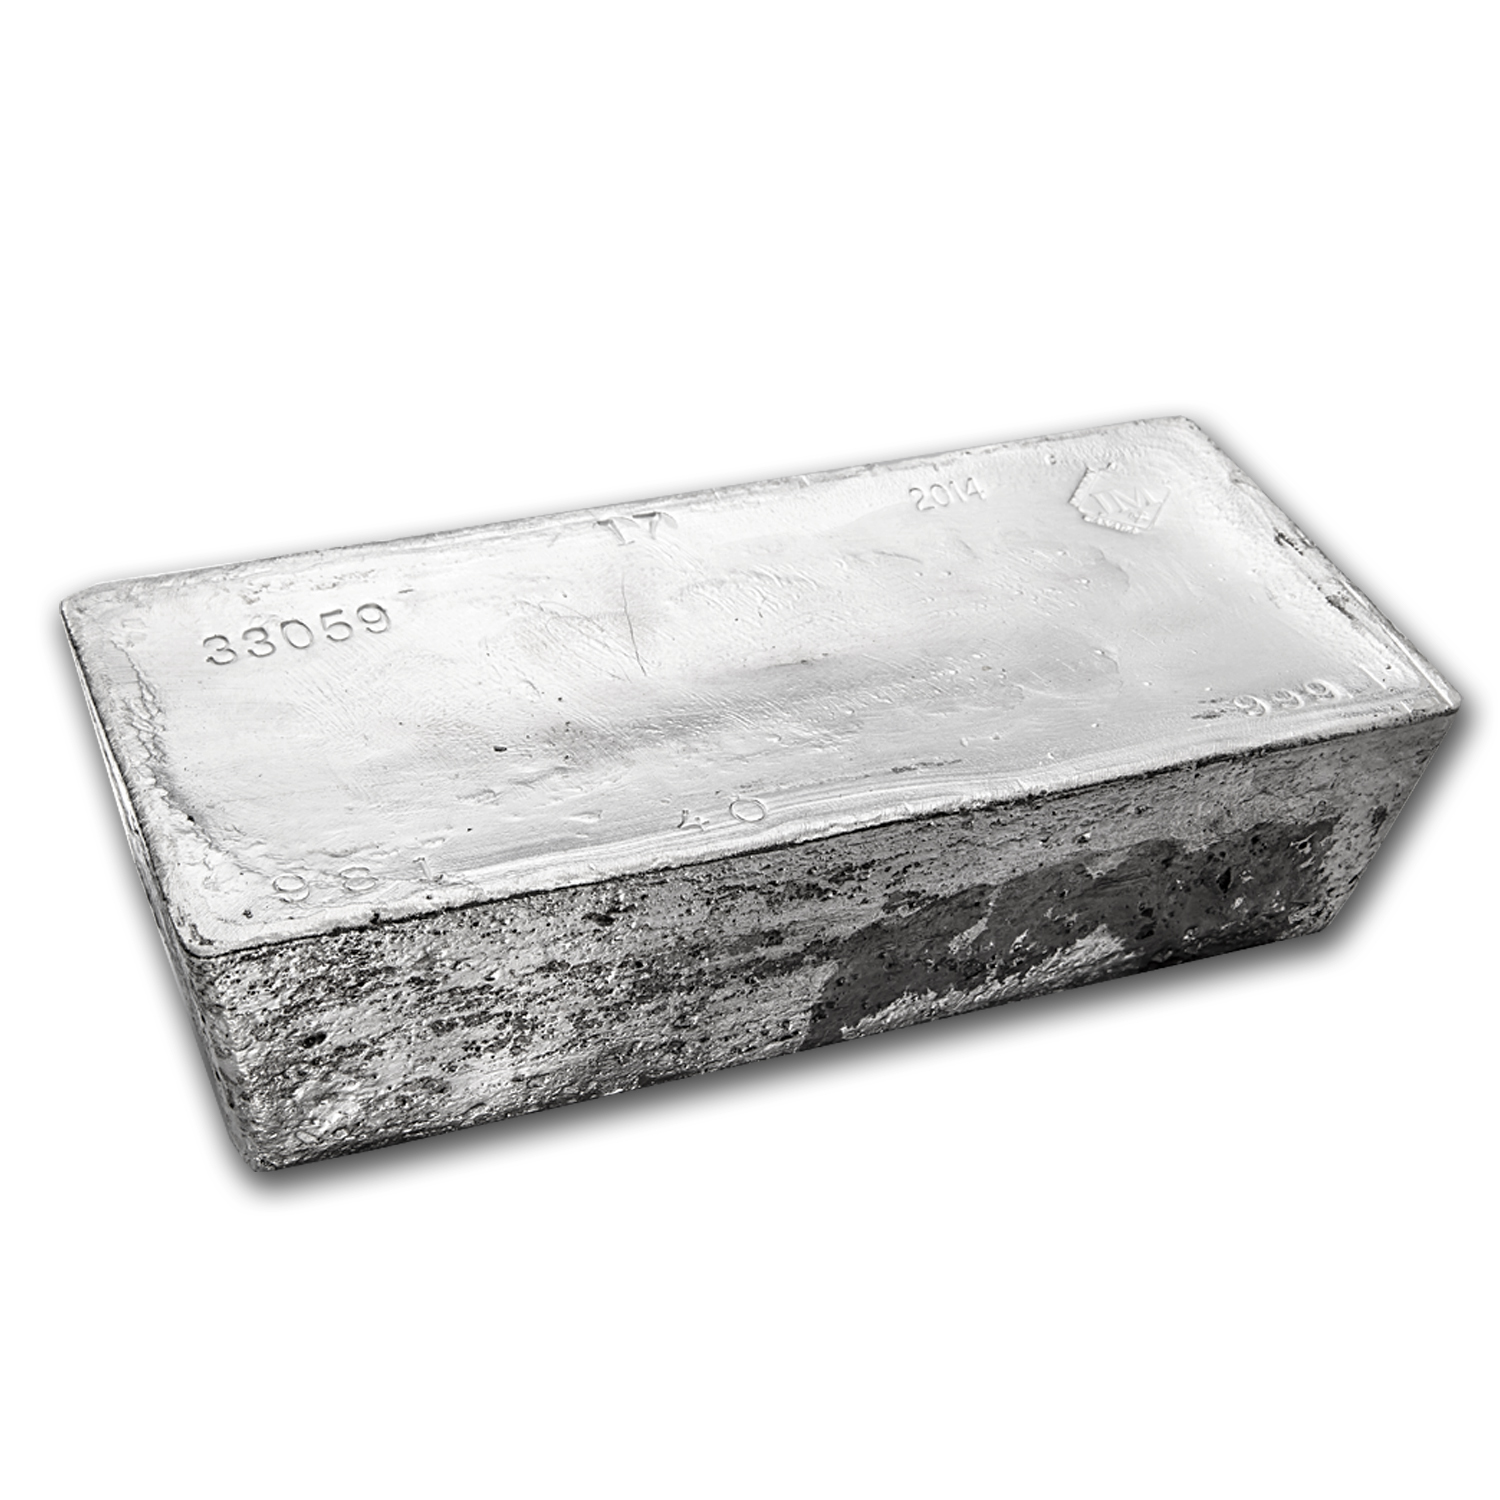 957.00 oz Silver Bar - Johnson Matthey (#33176-4) (11/11)